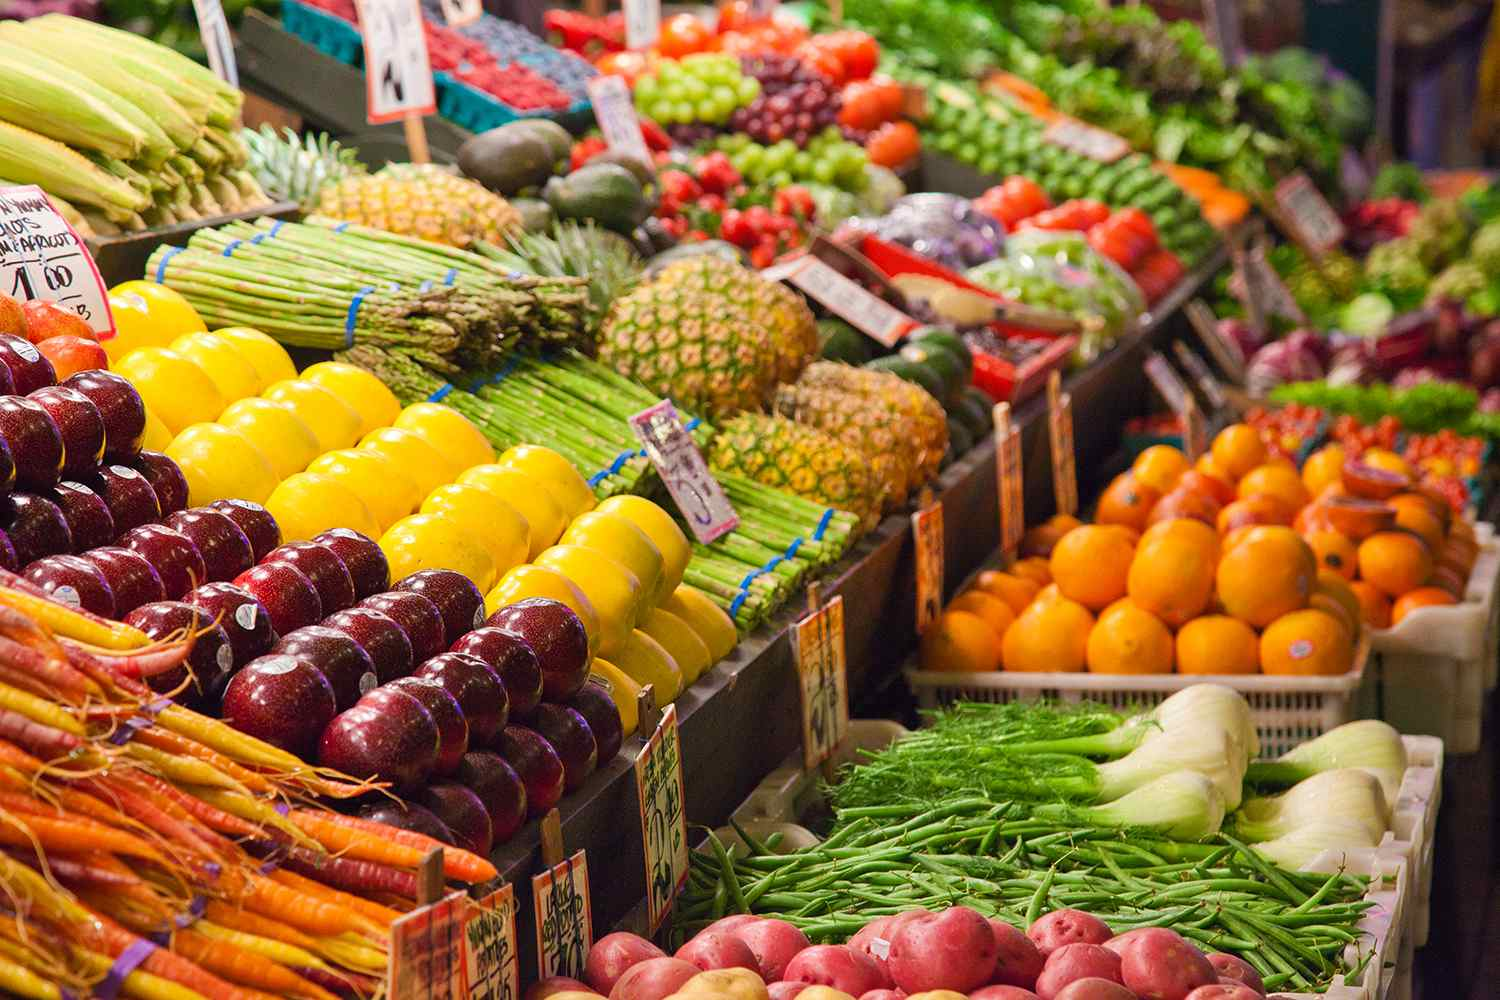 A fruit and vegetable stand at a local market in Seattle, Washington.